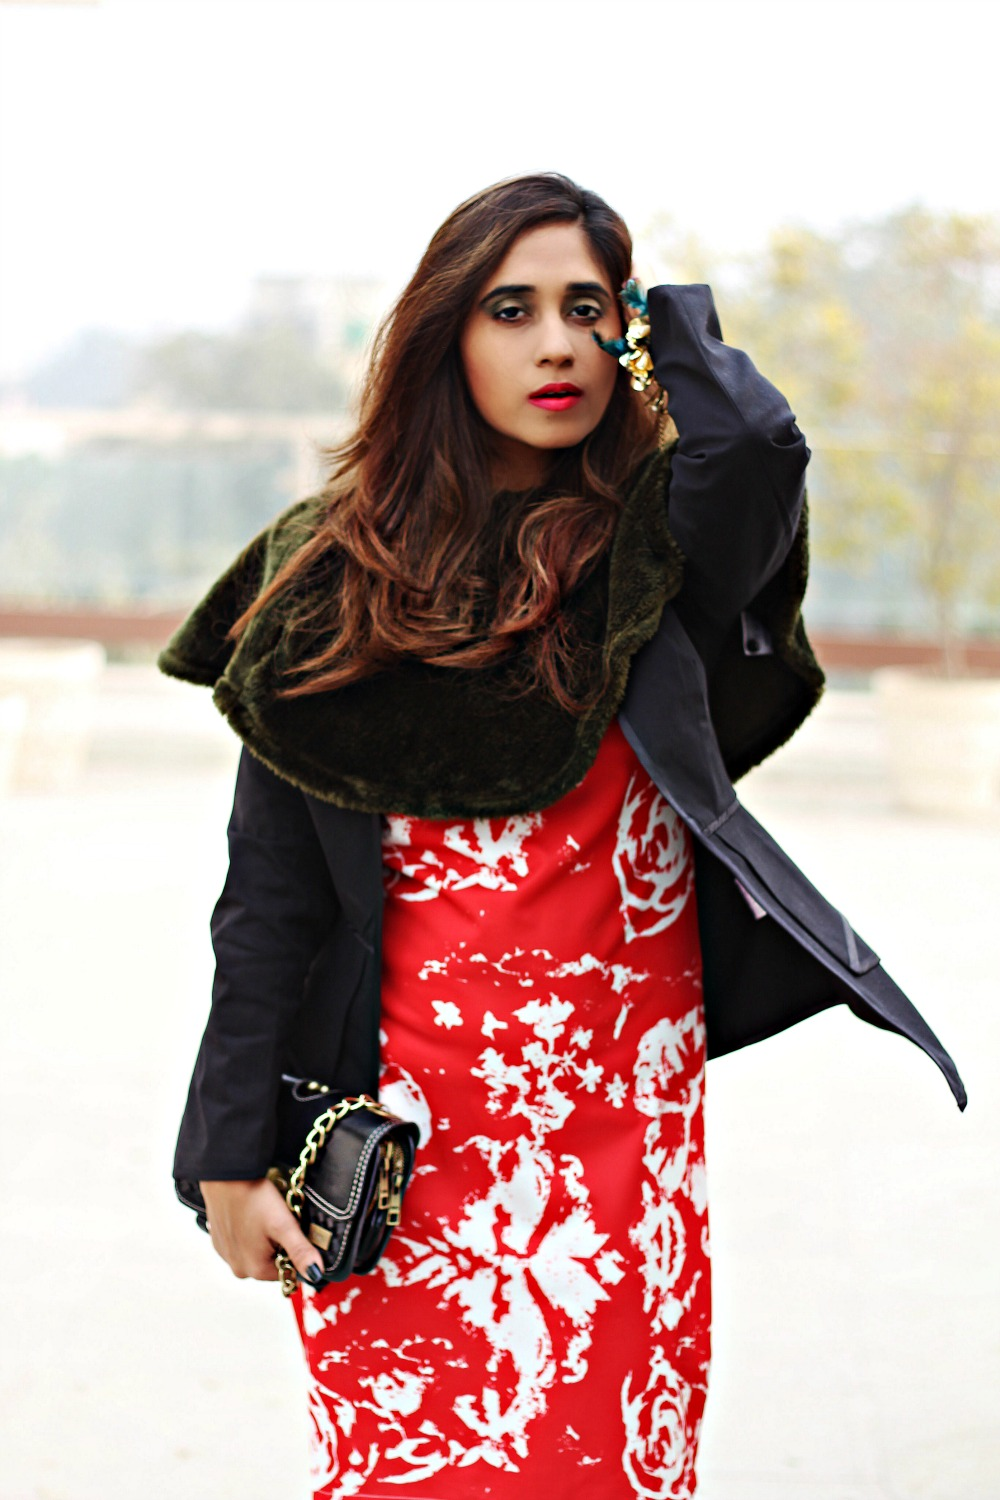 glamourous evening party looks with koovs asos blazer and fur